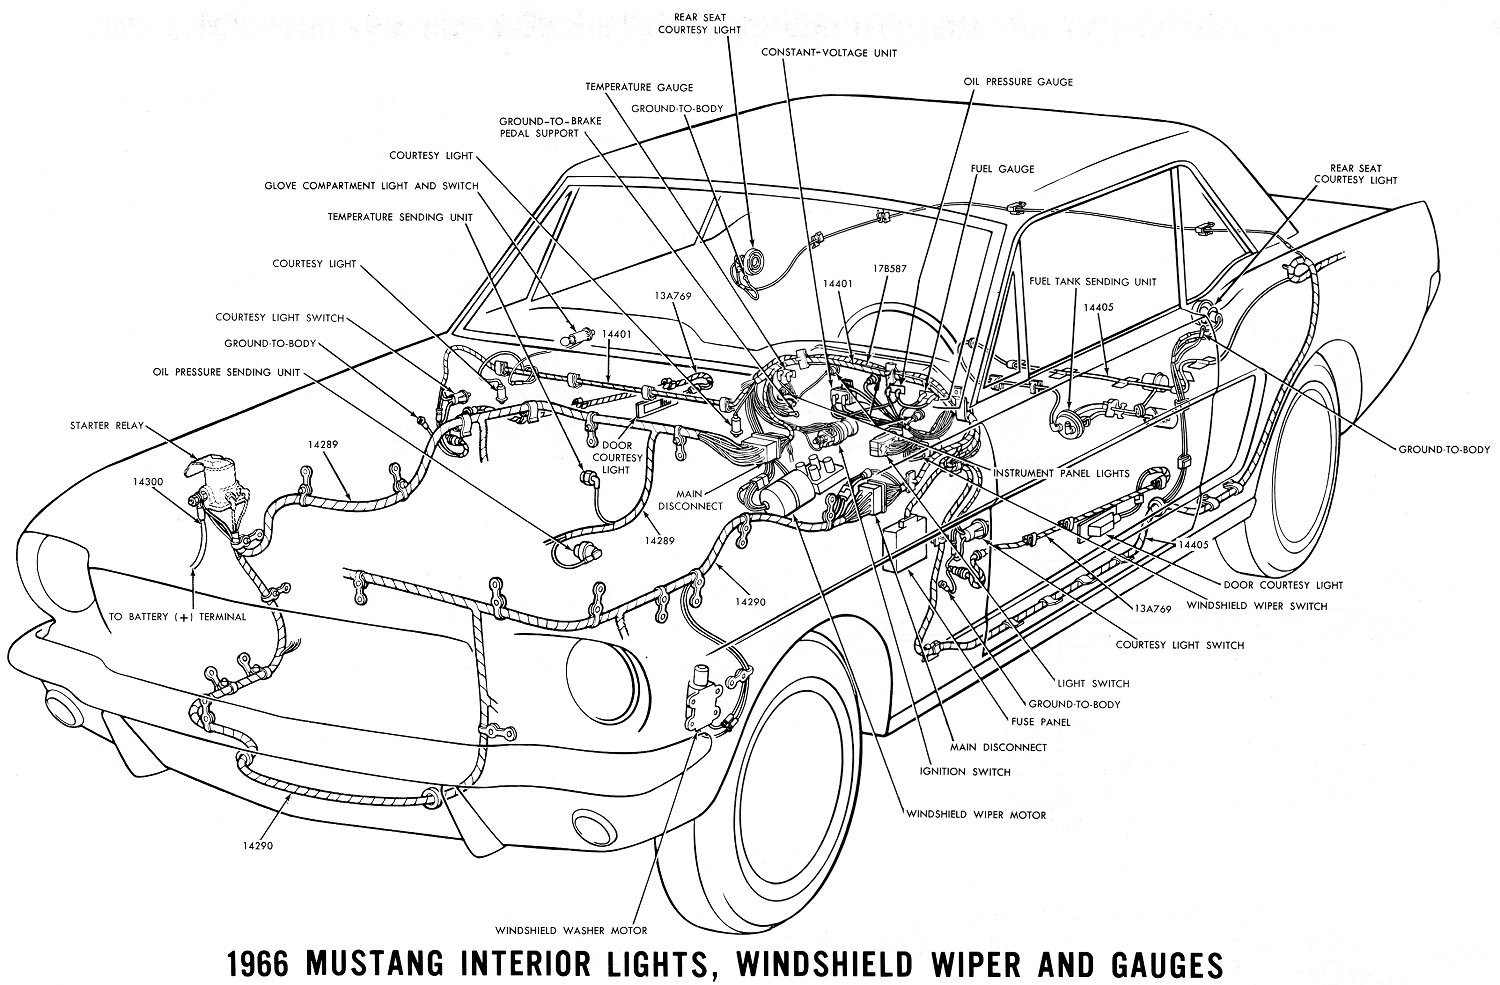 hight resolution of 1966 mustang wiring diagrams average joe restoration 1956 thunderbird horn wiring diagram 1966 mustang horn wiring diagram